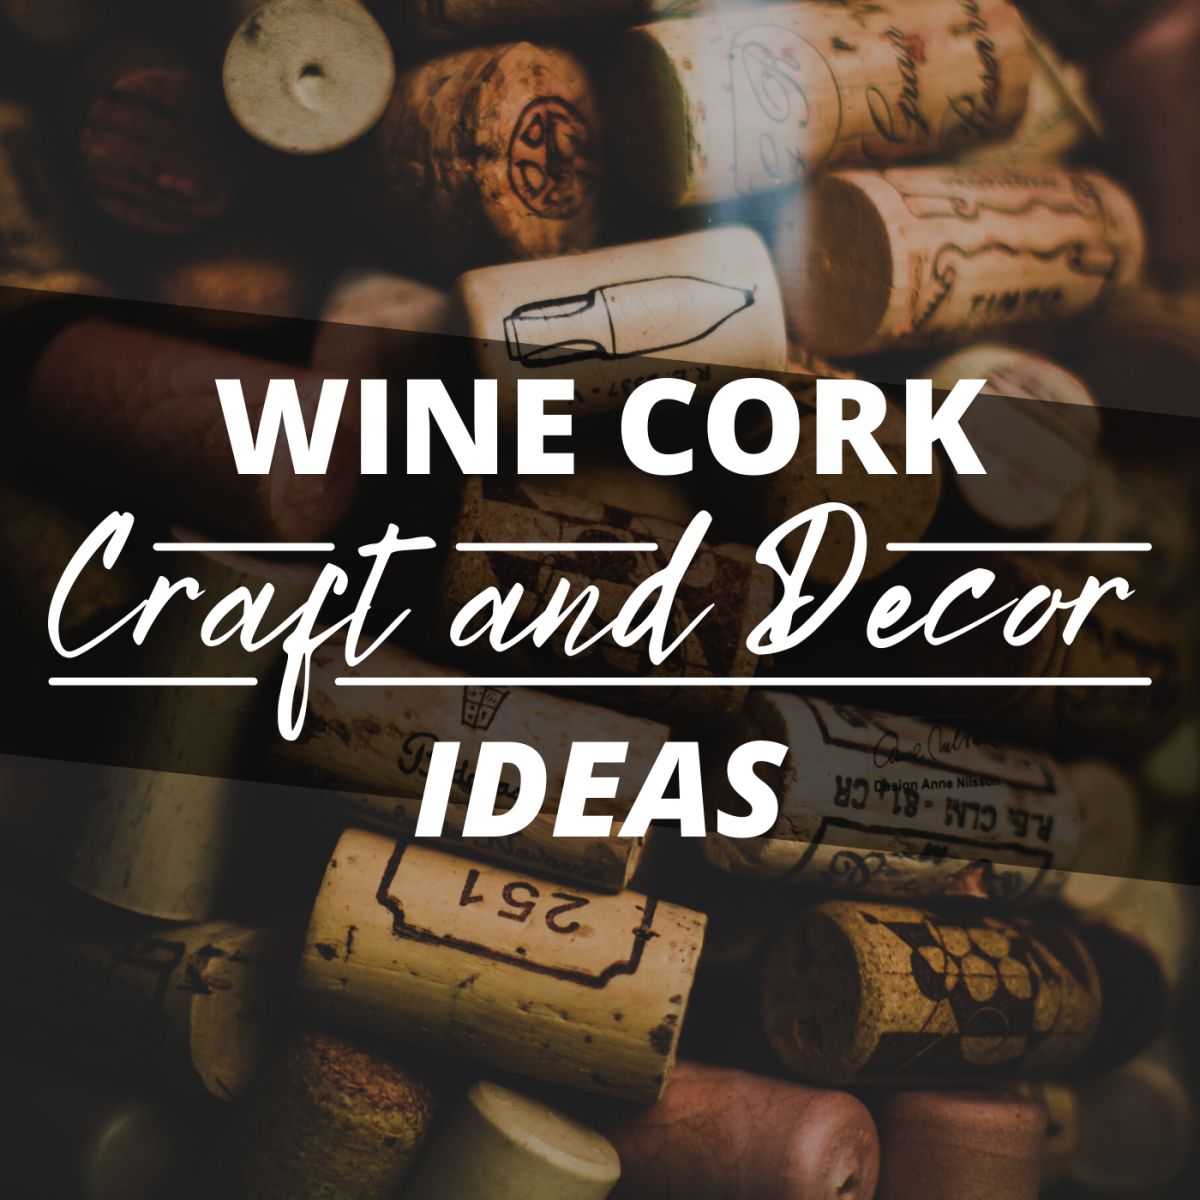 Wine corks are limitlessly useful. If you're a wine drinker, put your corks to use around the home and garden!